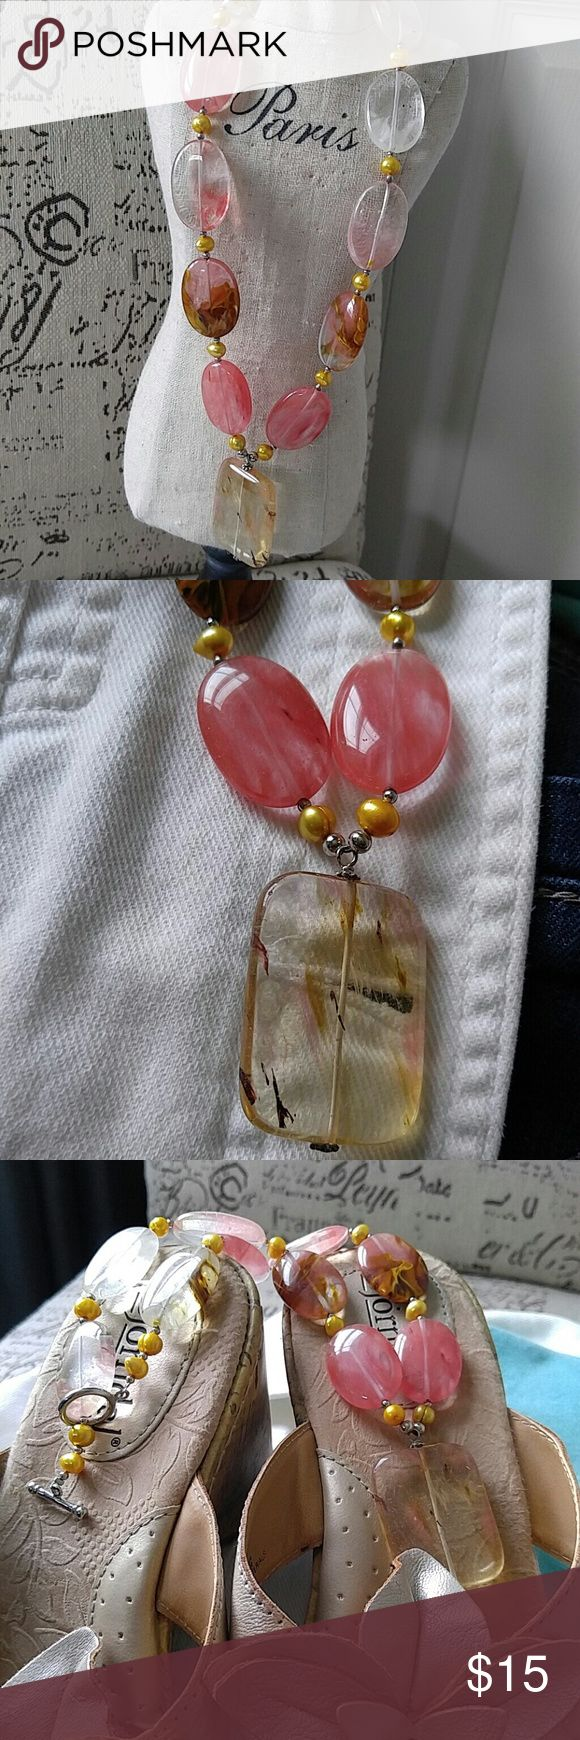 """Stone necklace. Salmon, clear, tan Clear, tans, golds, peachy and salmon are the colors in this one.  (For whatever reason I simply can't capture the salmon color. The stones are a more muted salmon color,  not vibrant or bright as they appear in pics.) 18.25"""" Jewelry Necklaces"""